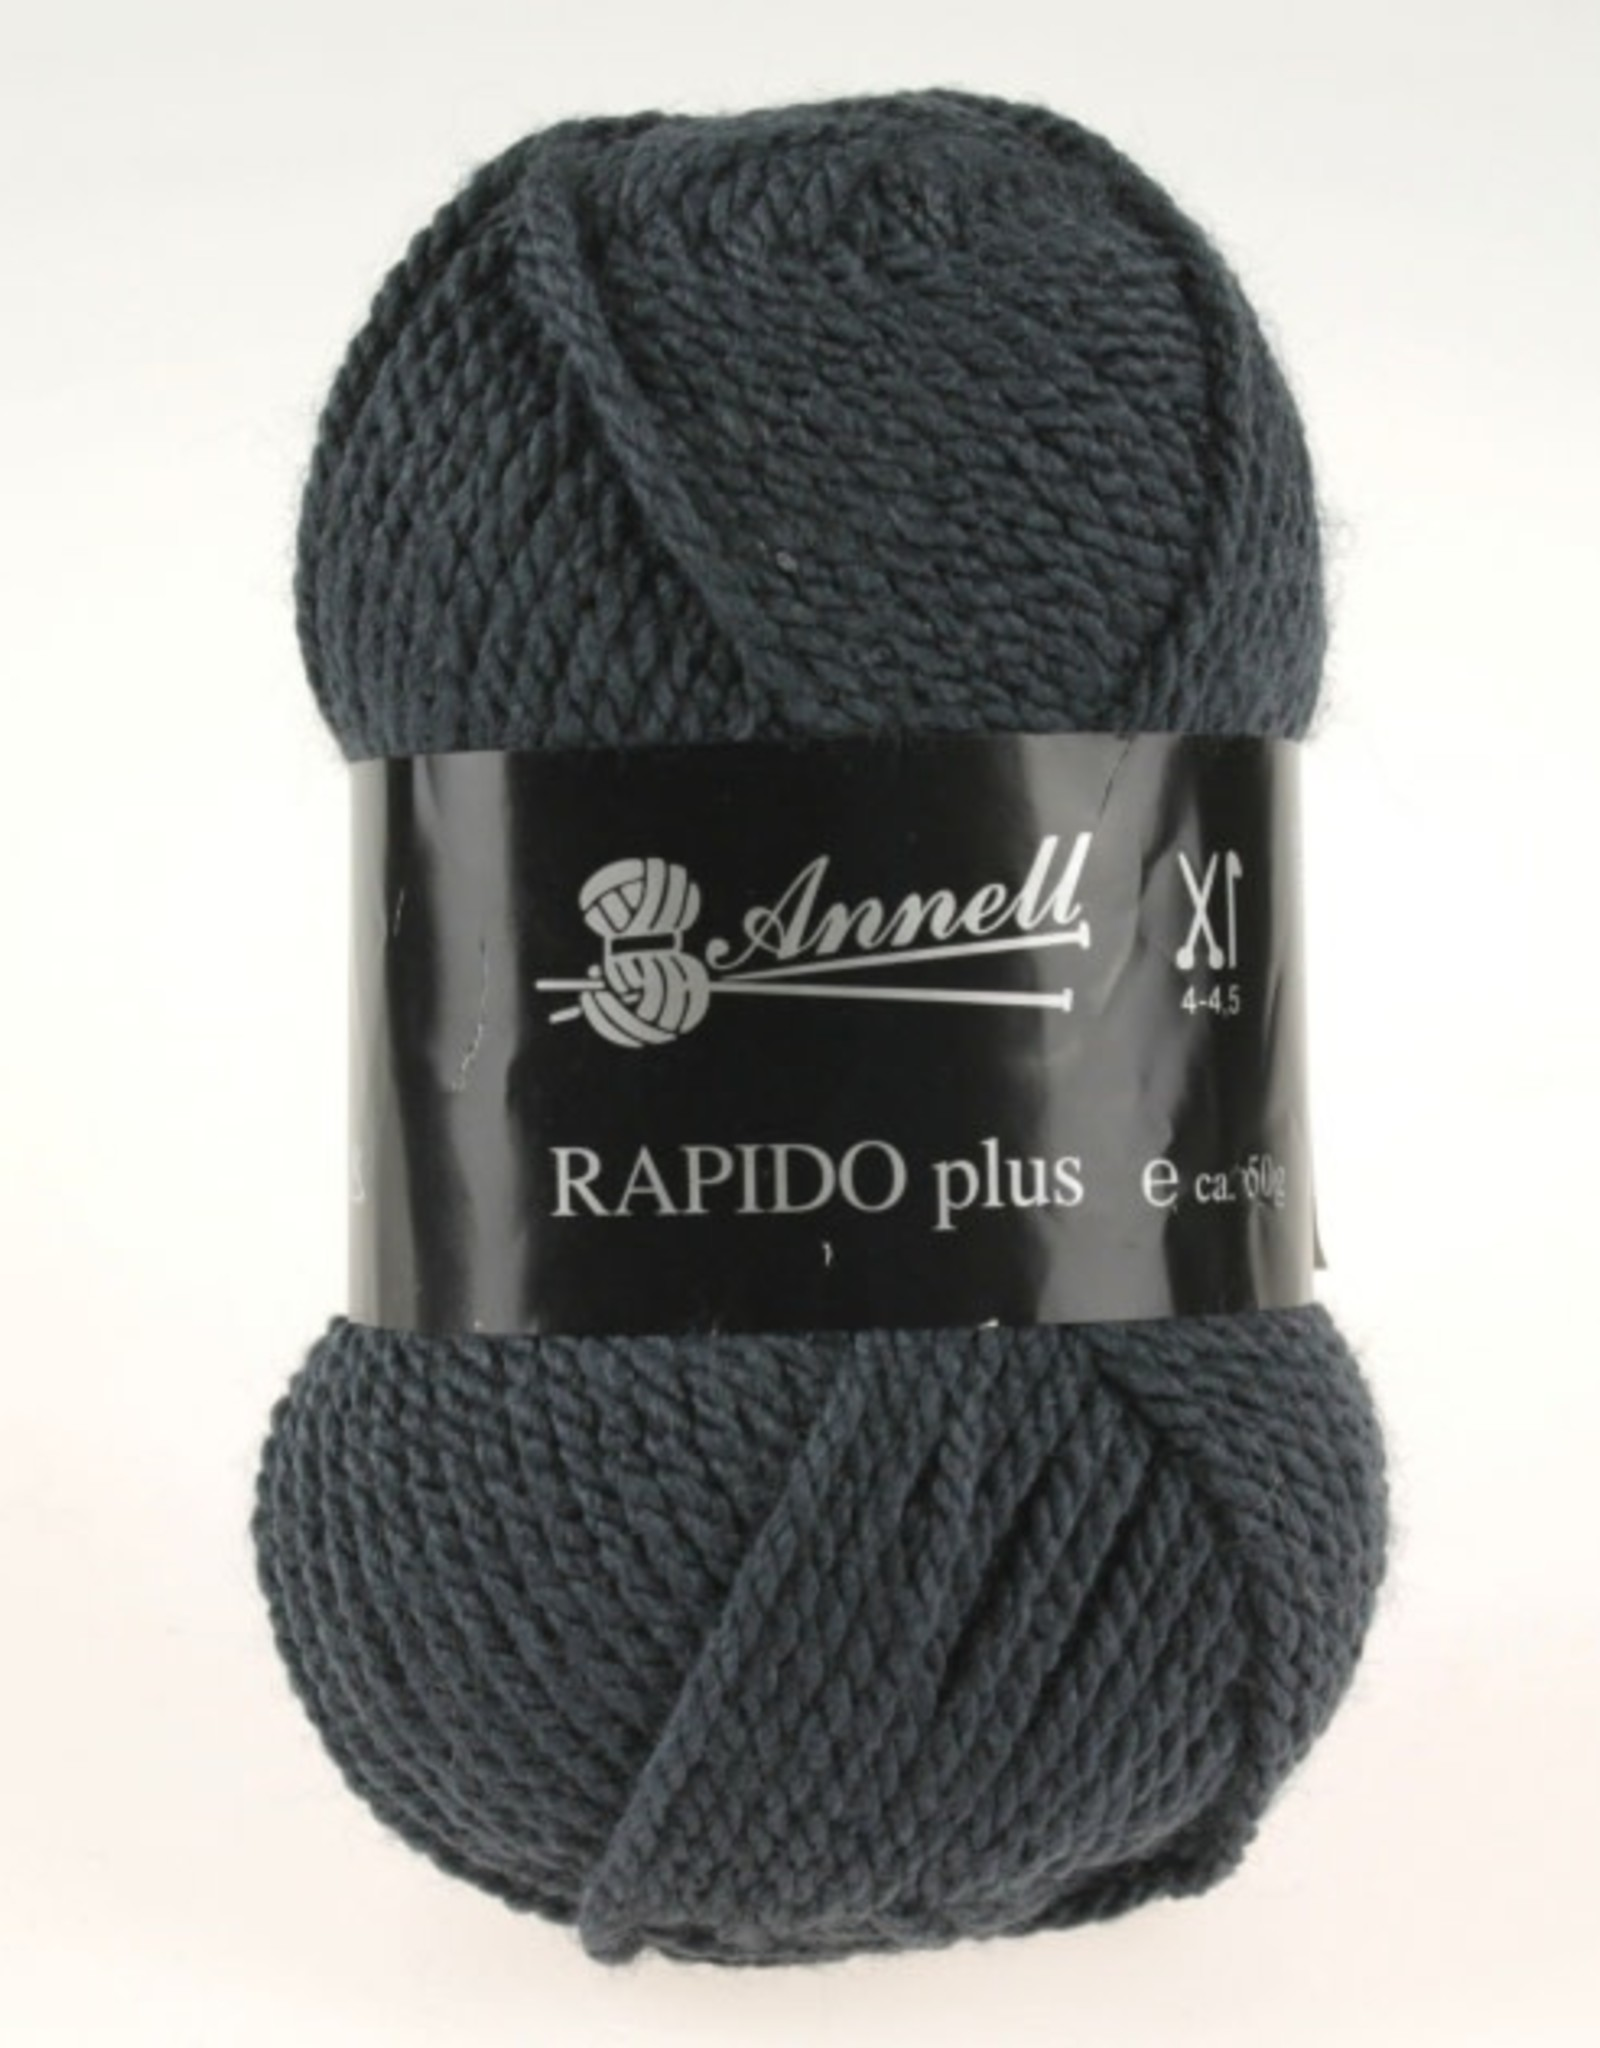 Annell Annell rapido plus 9258